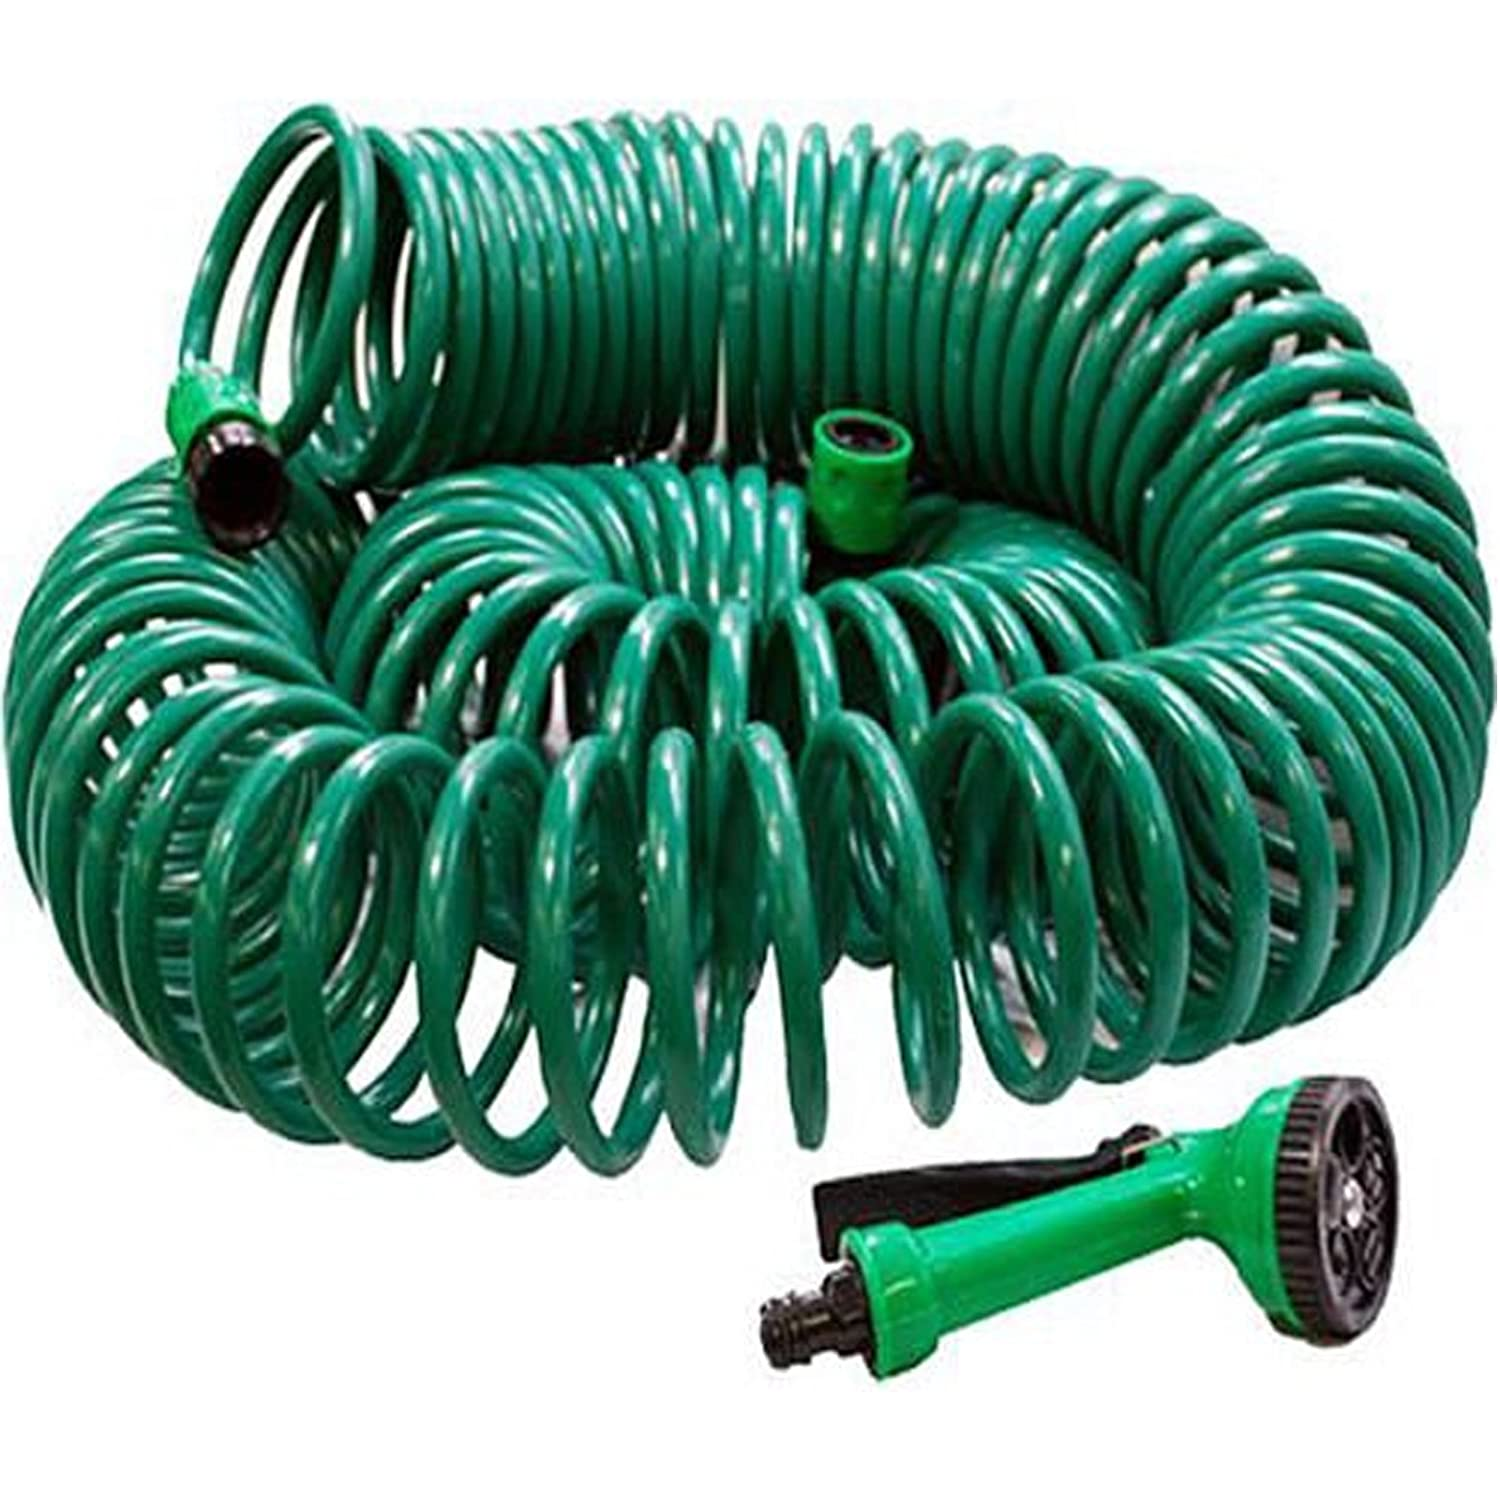 50FT COIL 50 FT 15M GARDEN HOSE PIPE SPRAY GUN NEW Amazoncouk